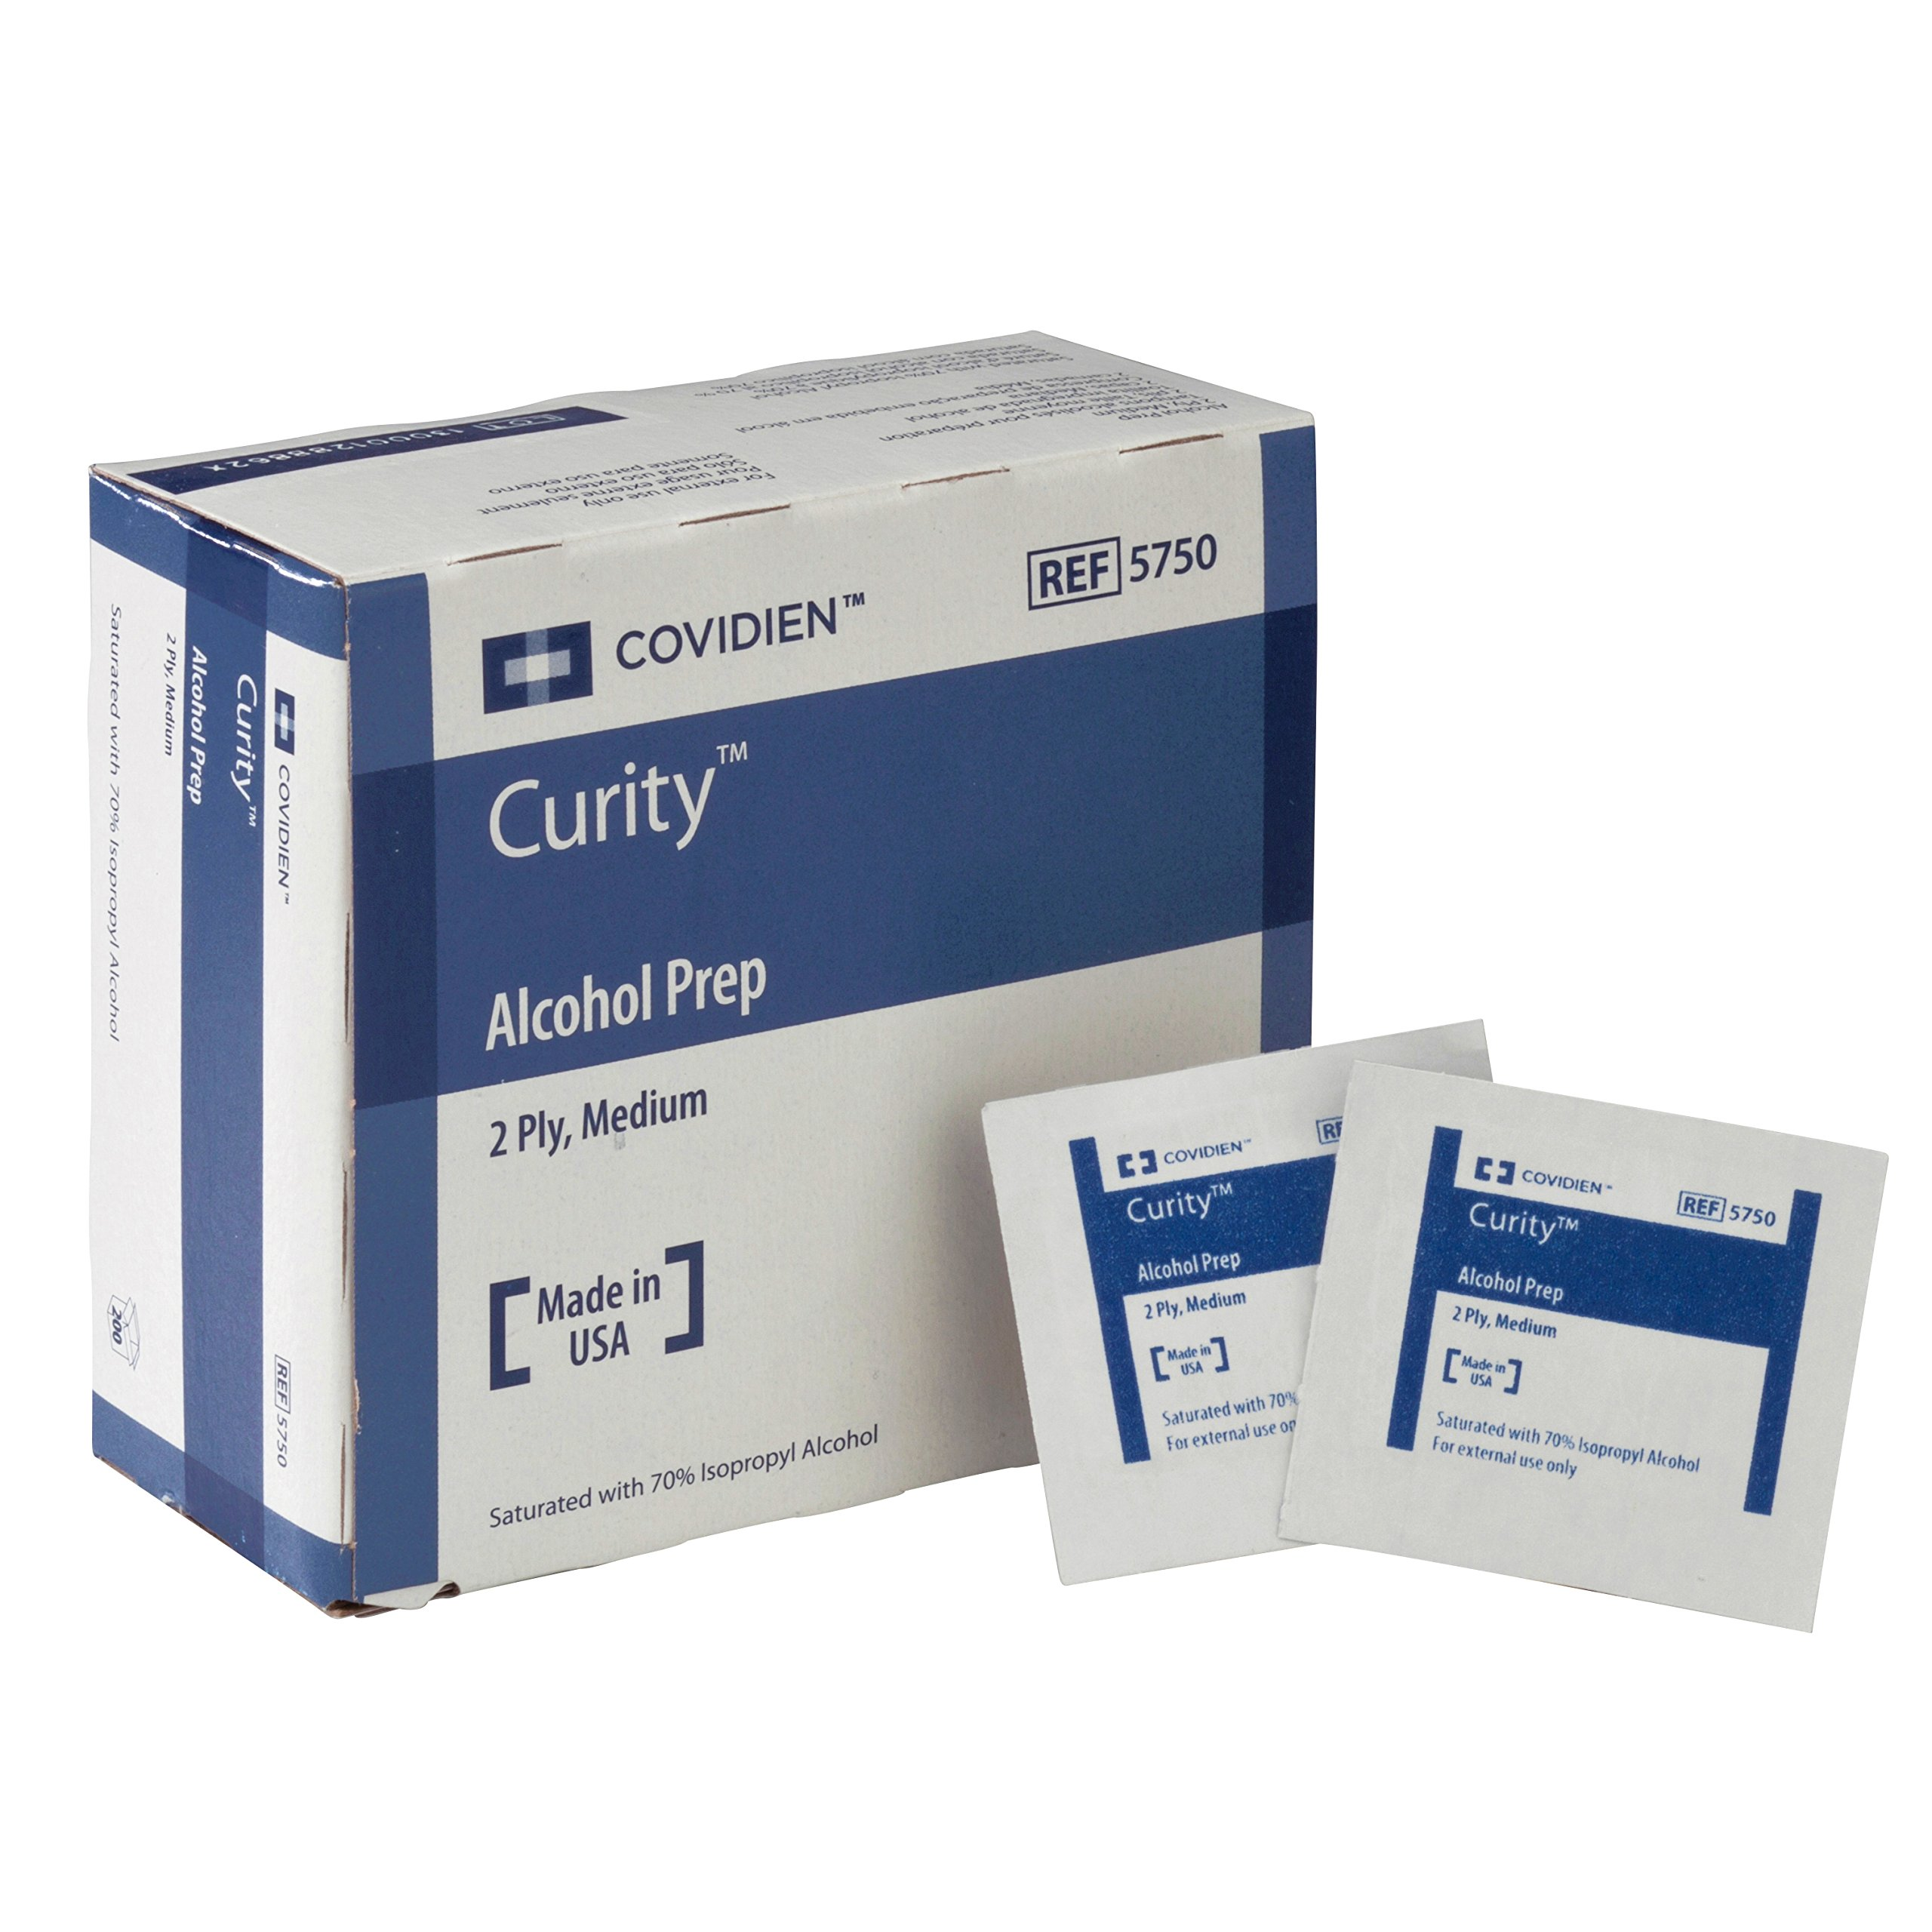 Covidien 5750 Curity Alcohol Prep, Sterile, Medium, 2-ply (Pack of 200) by COVIDIEN (Image #1)